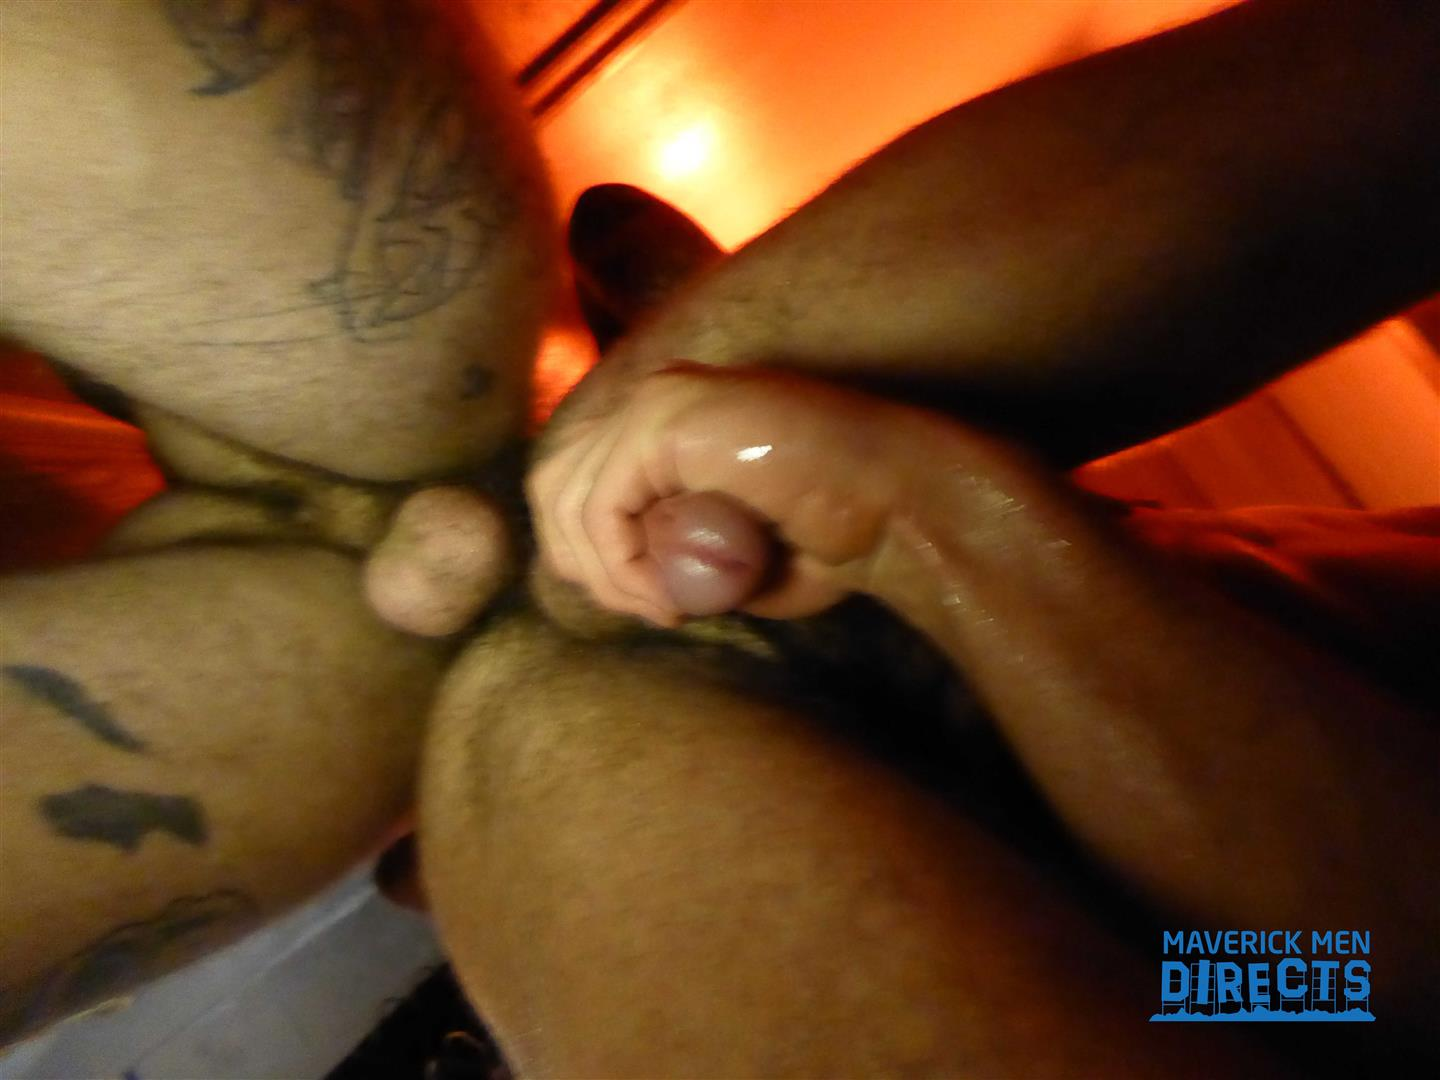 Maverick-Men-Directs-Men-Bareback-Fucking-In-A-Gay-Bar-Bathroom-15 Getting Bred By A Big Dick In The Bathroom At A Gay Bar